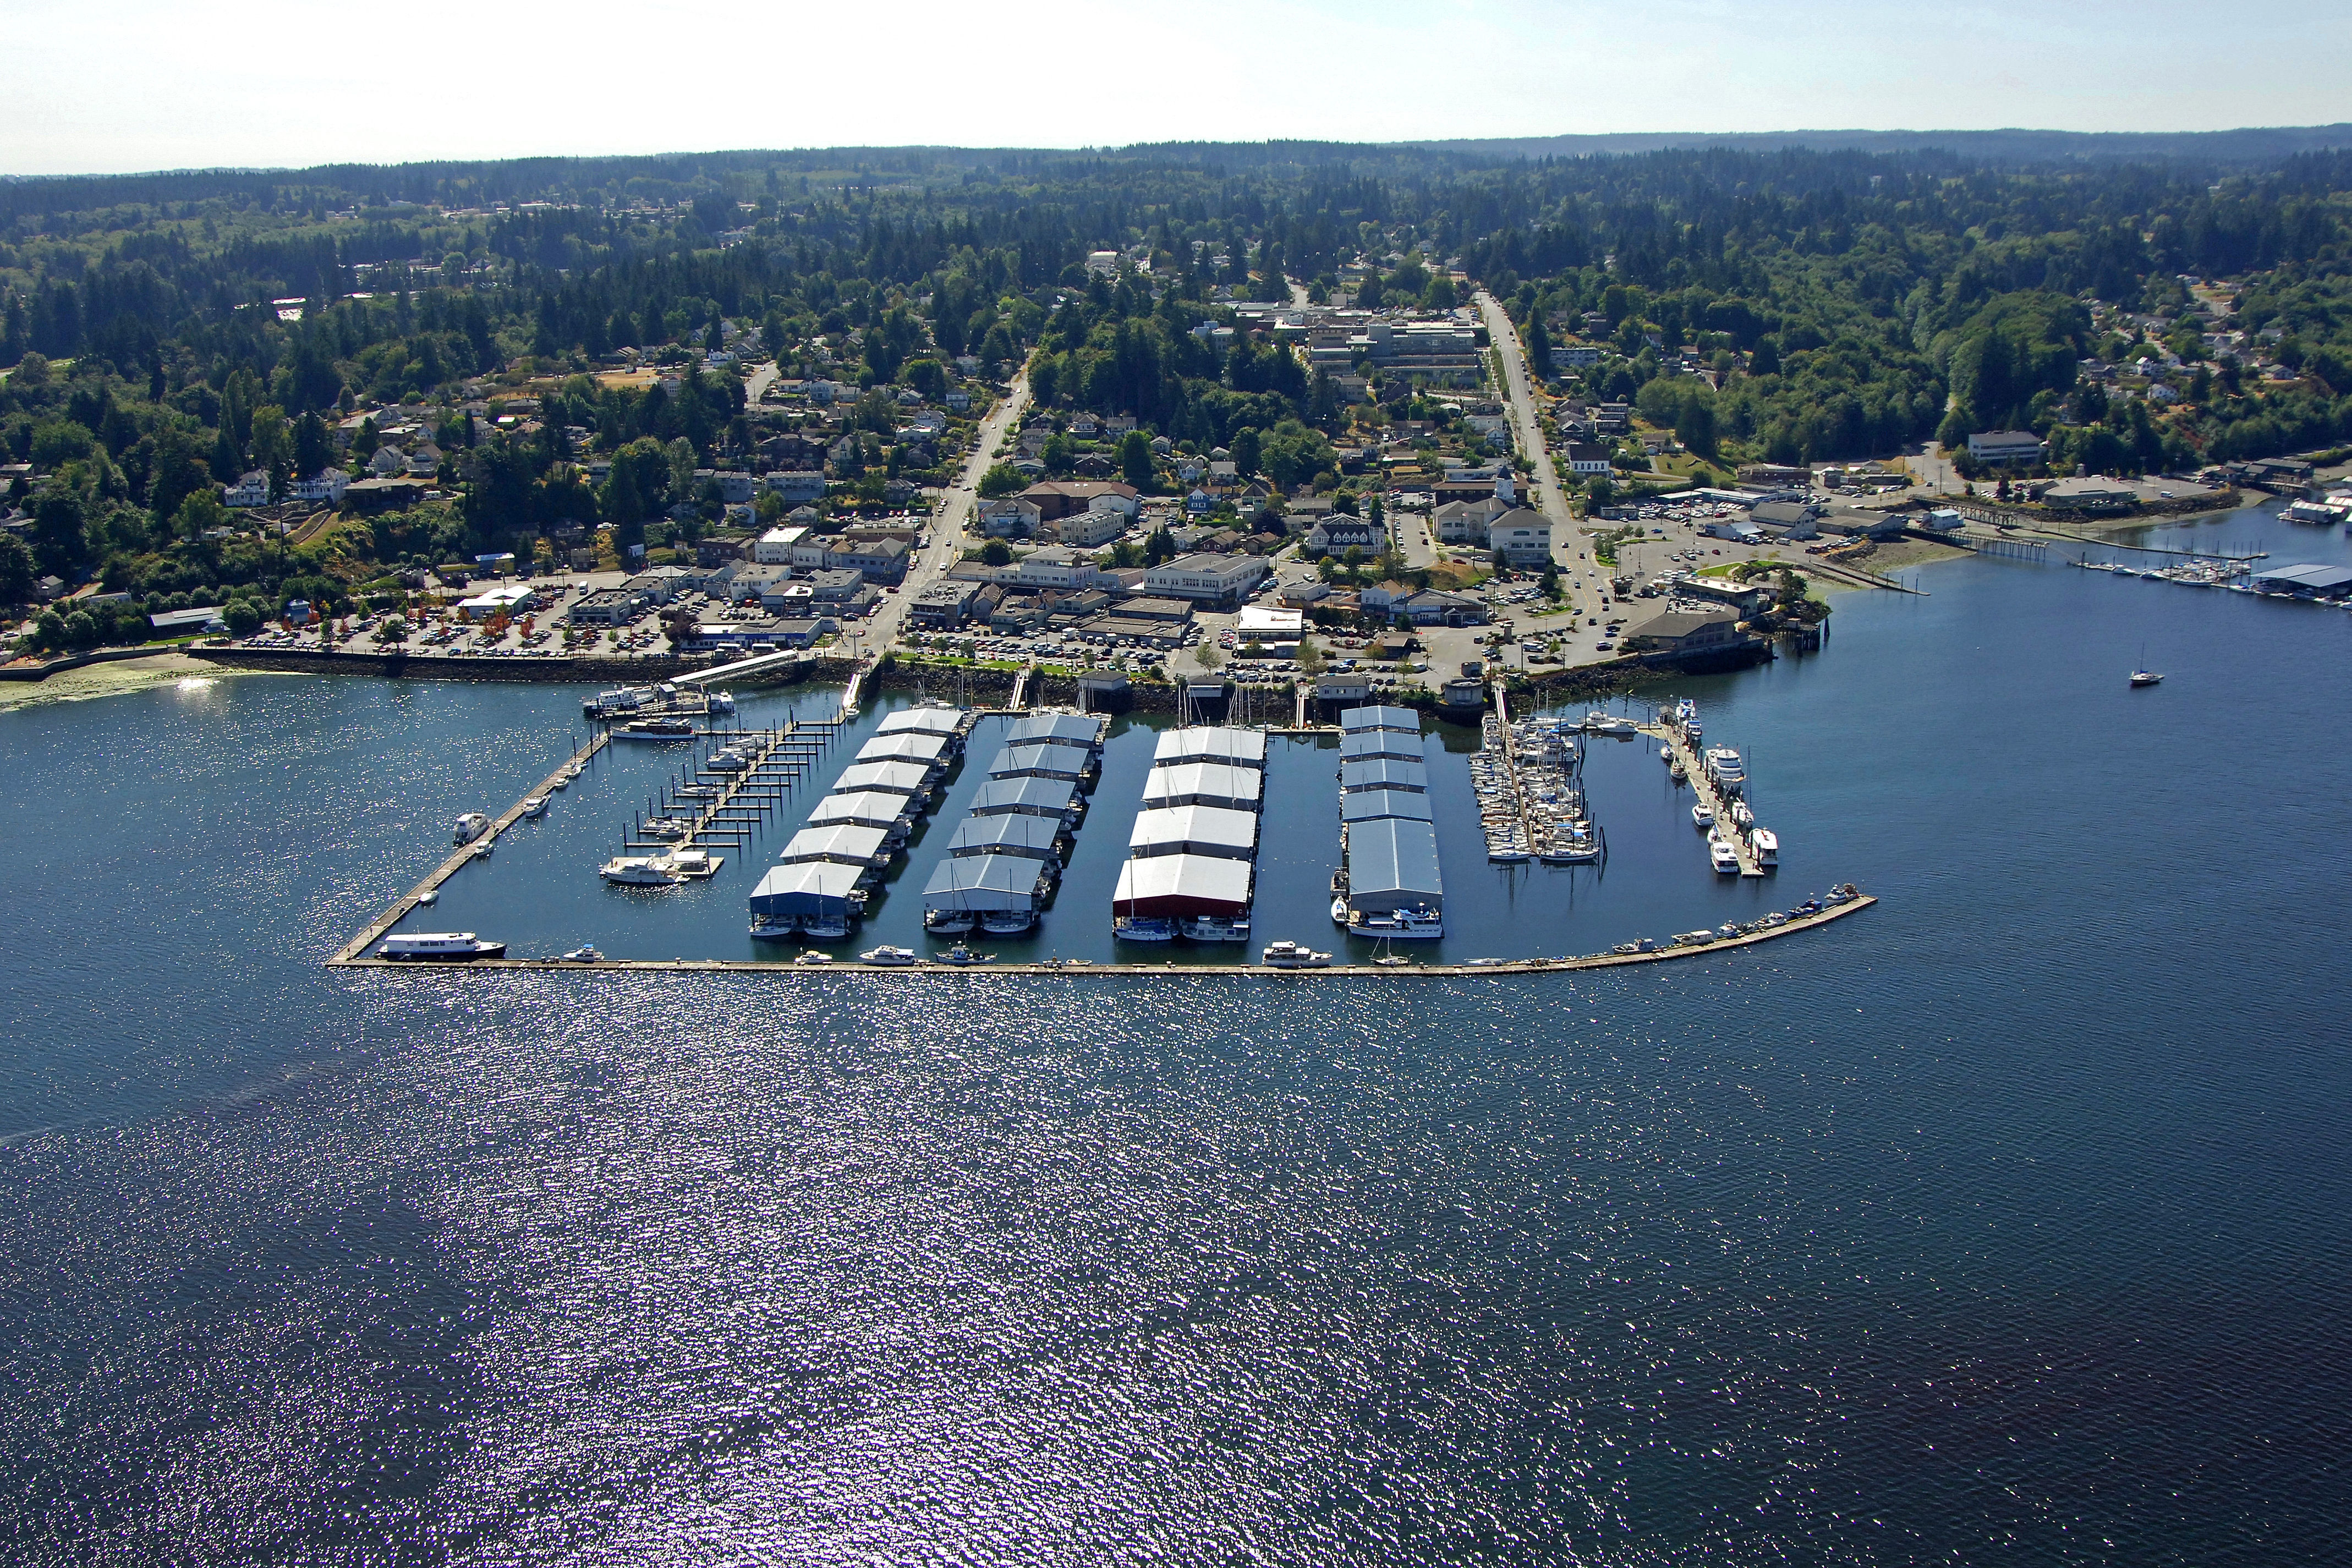 port orchard City of port orchard (wa) login and bill pay links, customer care, service, support and contact info find city of port orchard (wa) phone numbers, email addresses.